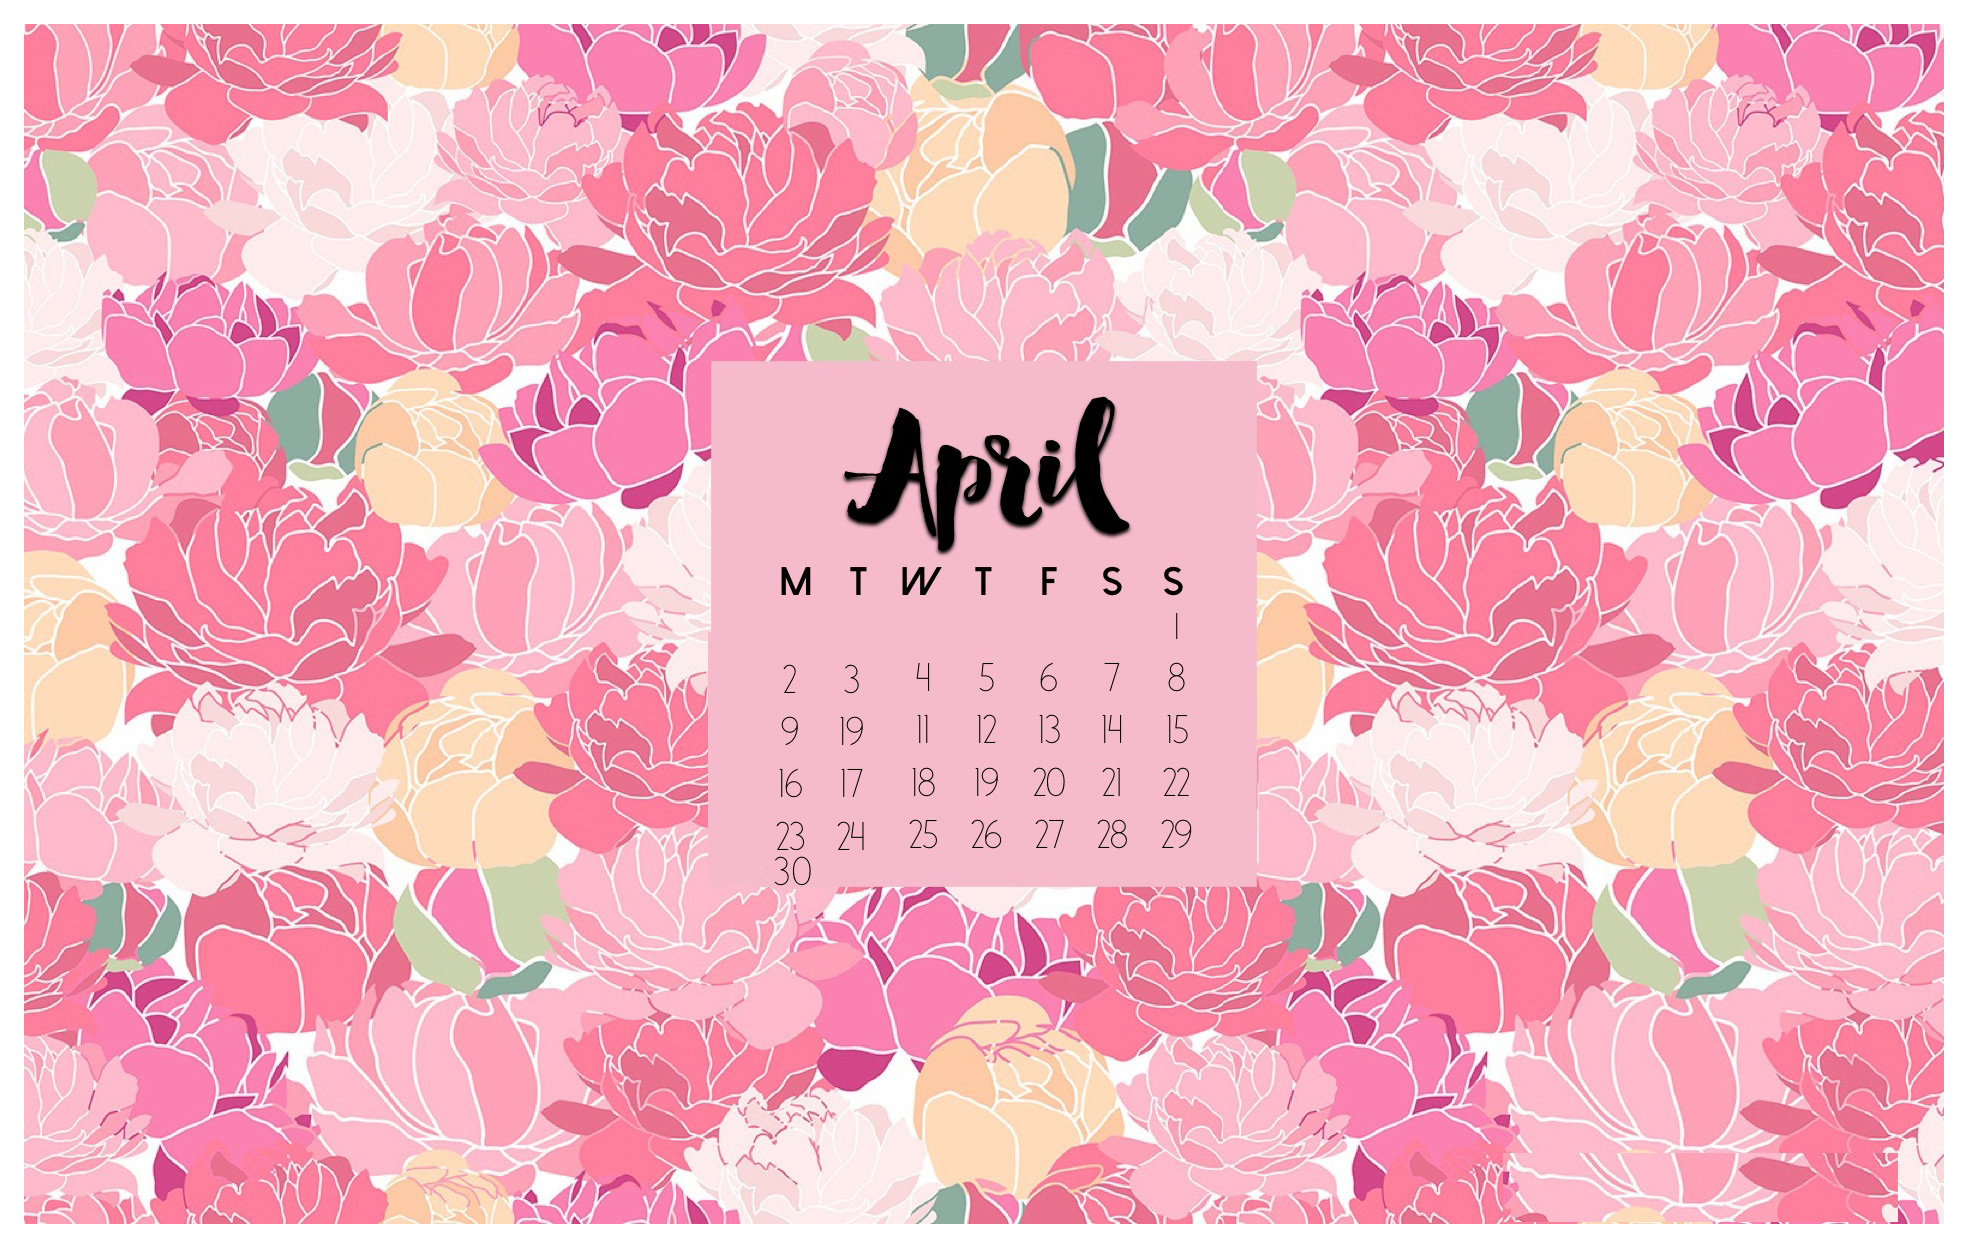 Wallpaper with April 2018 Calendar for PC iPad and SmartPhone 1974x1251